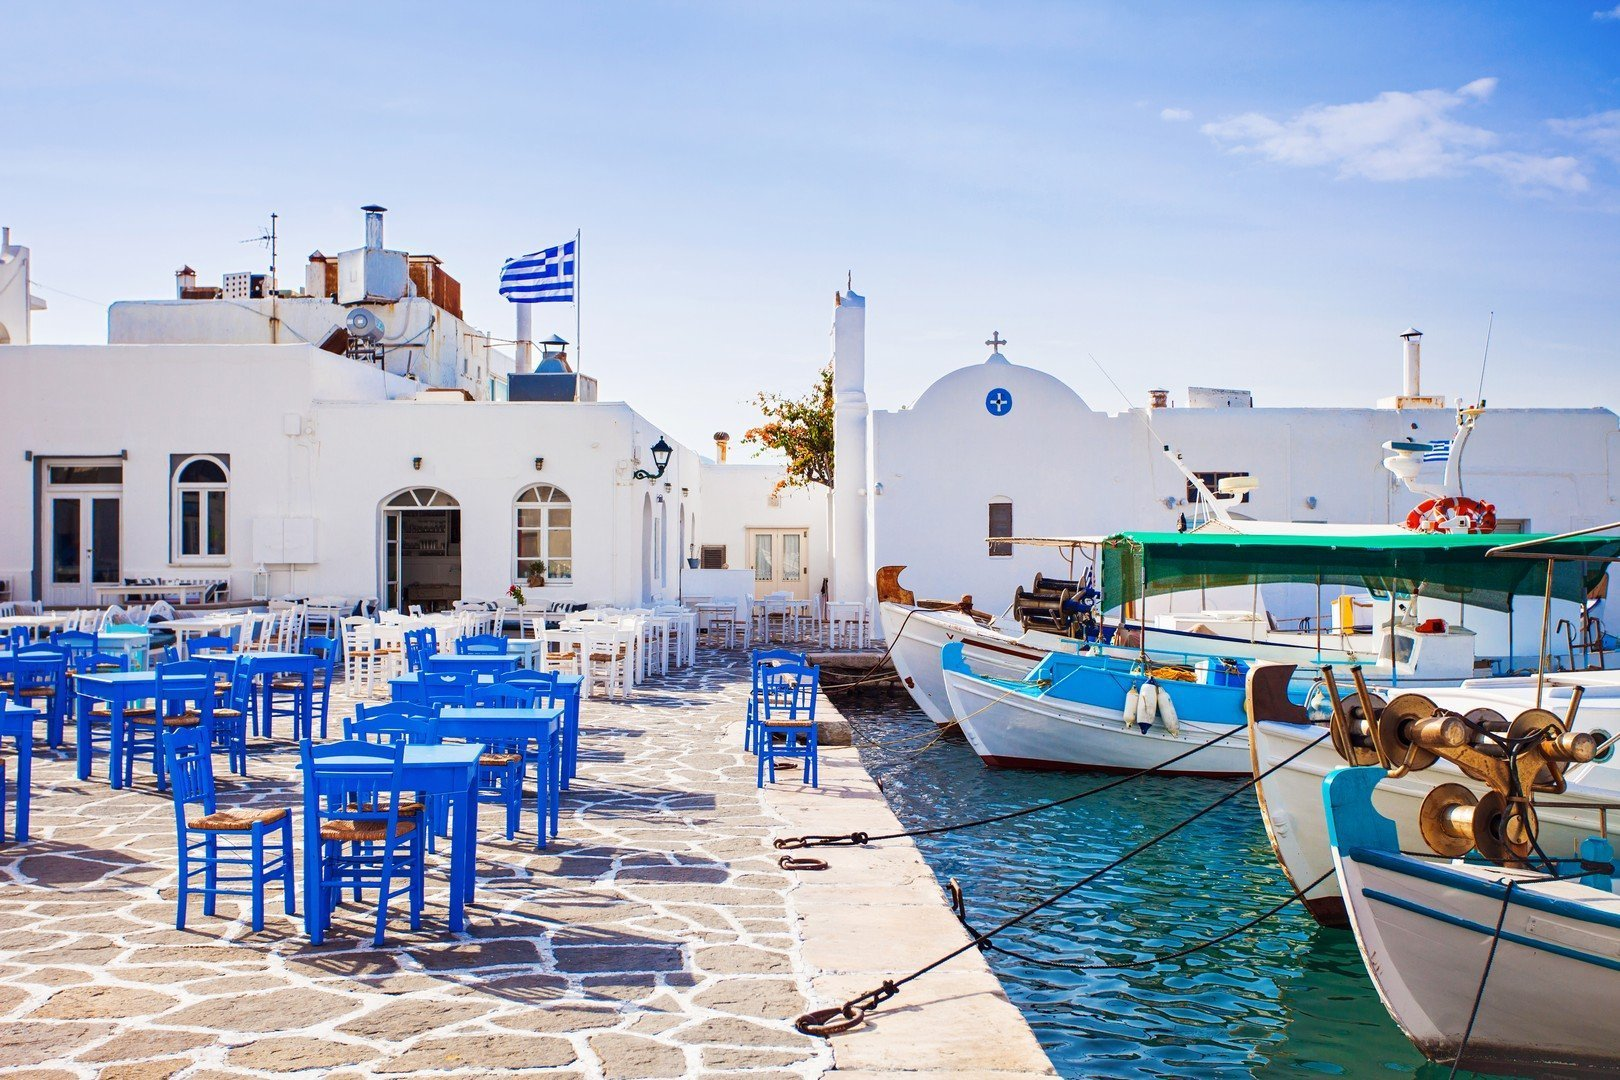 Greek fishing village in Paros, Naousa, Greece - Imagen shutterstock_336327542